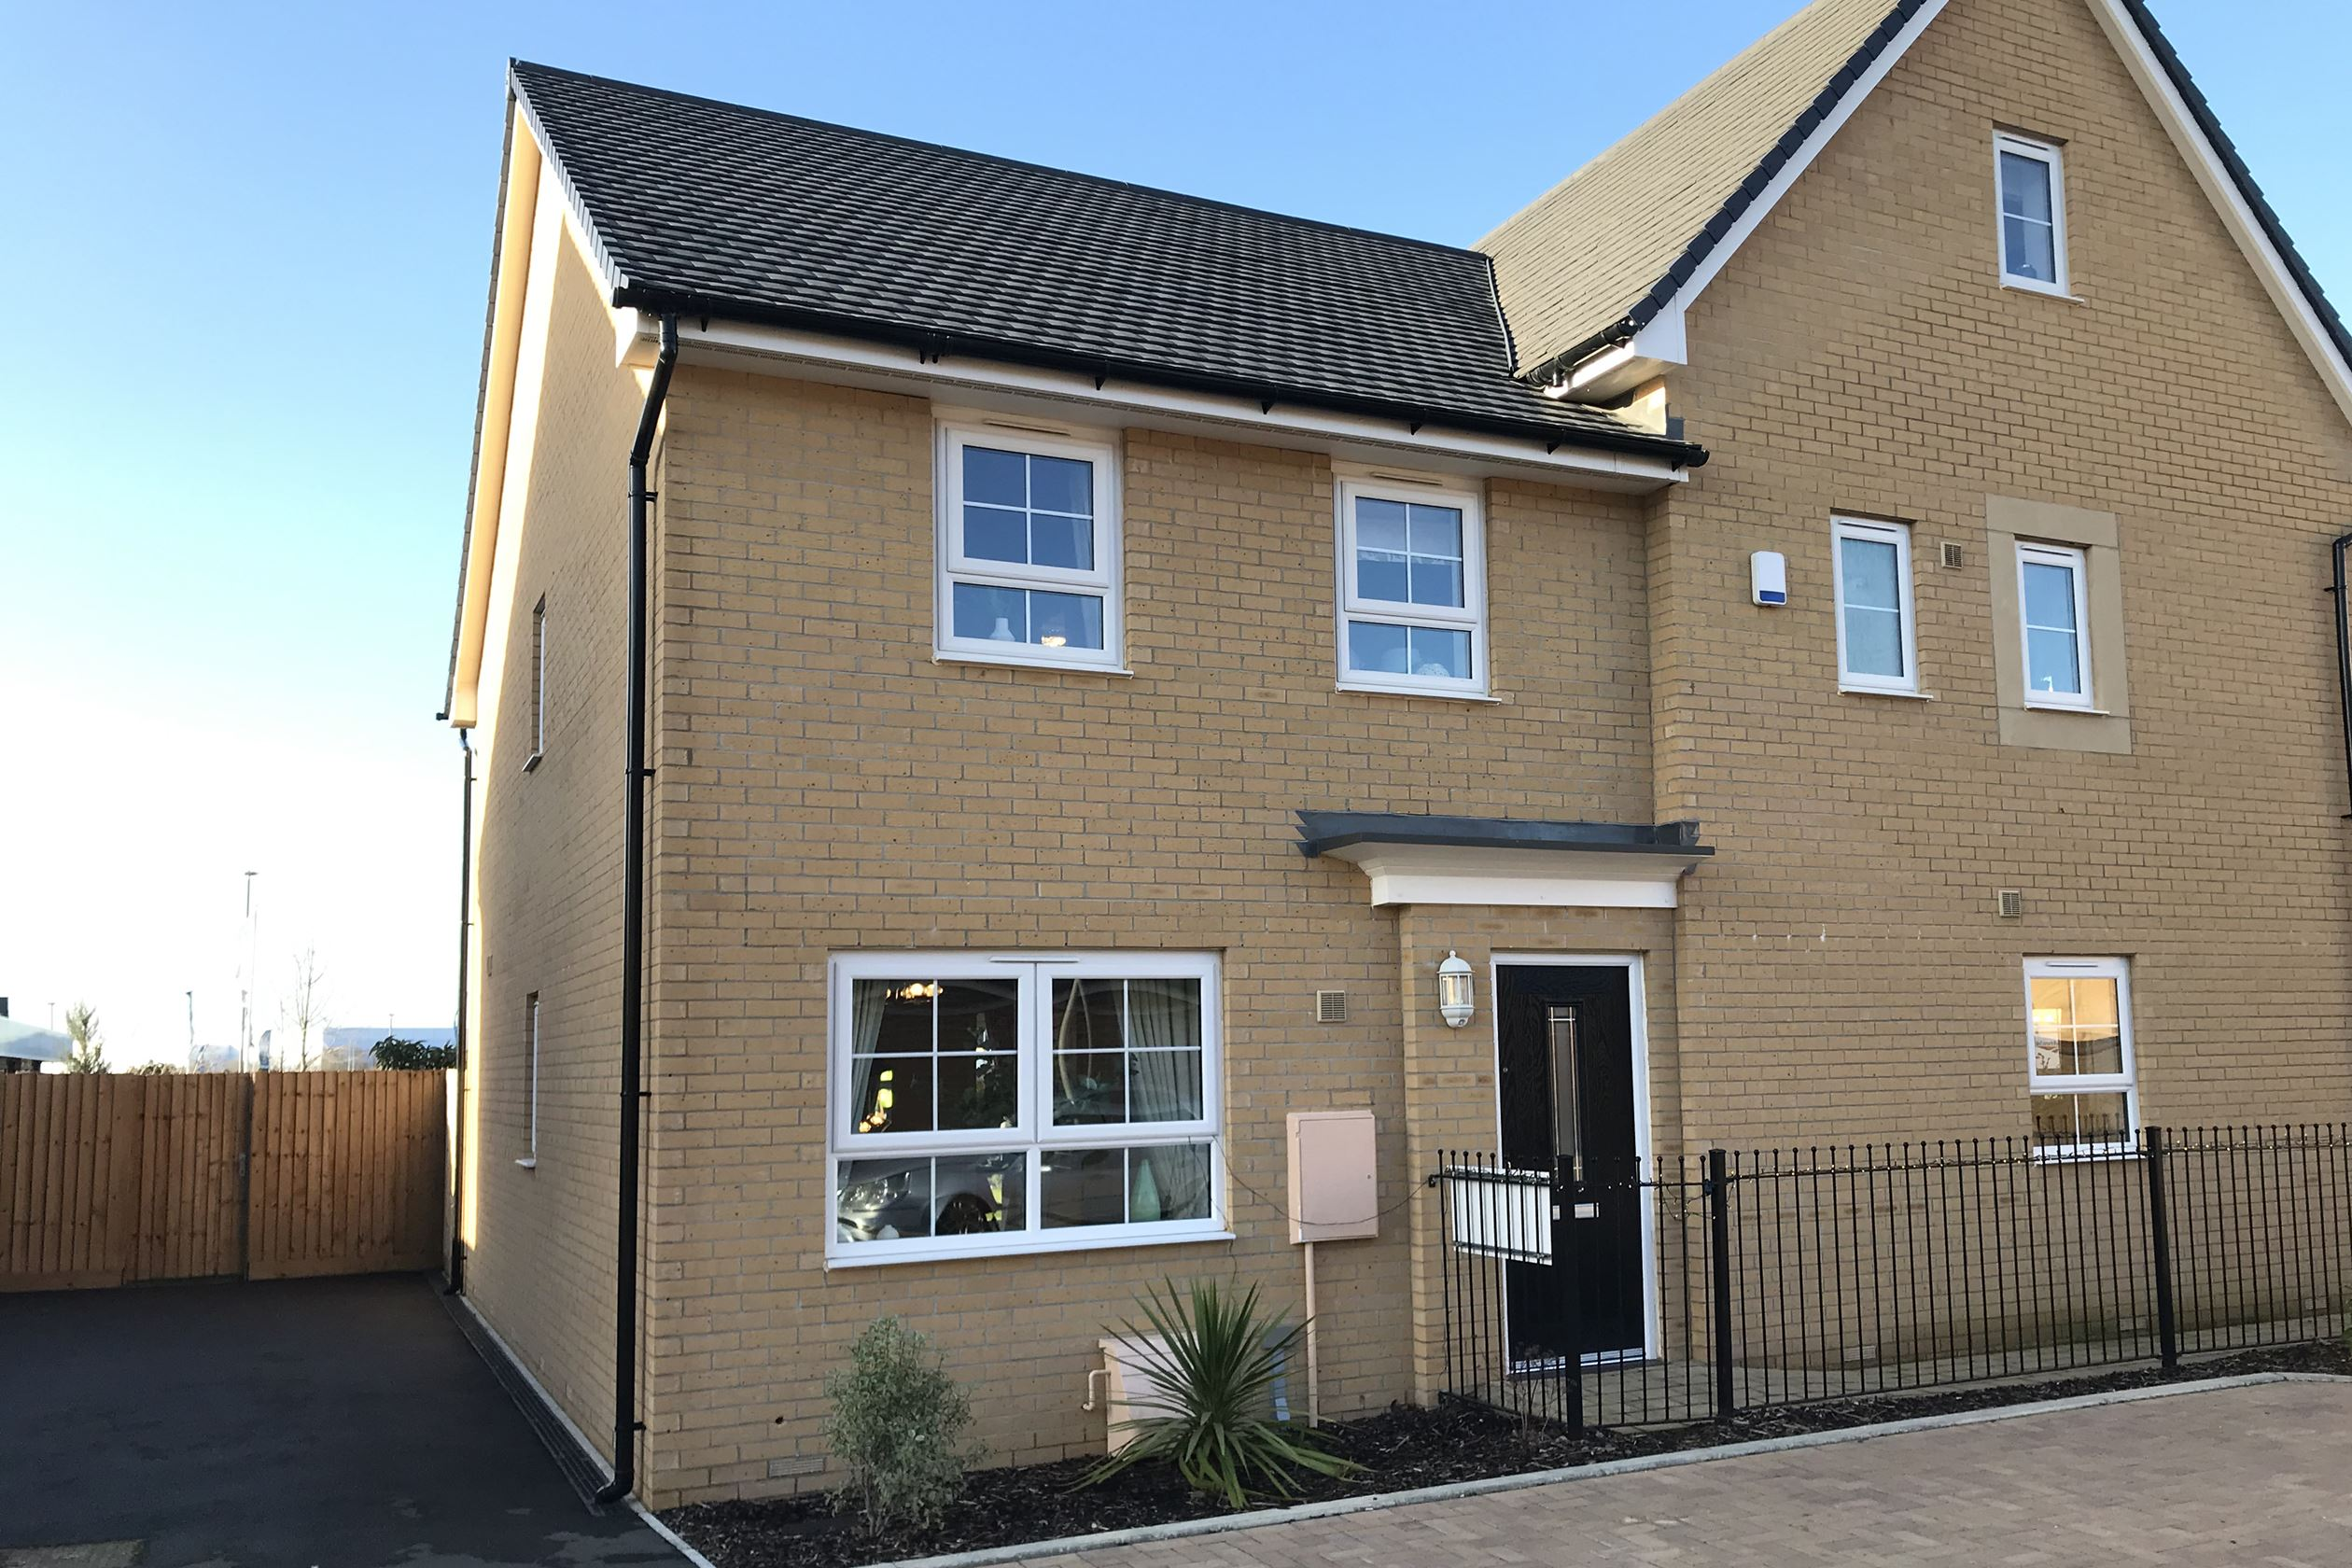 Plot 54 Maidstone Show Home